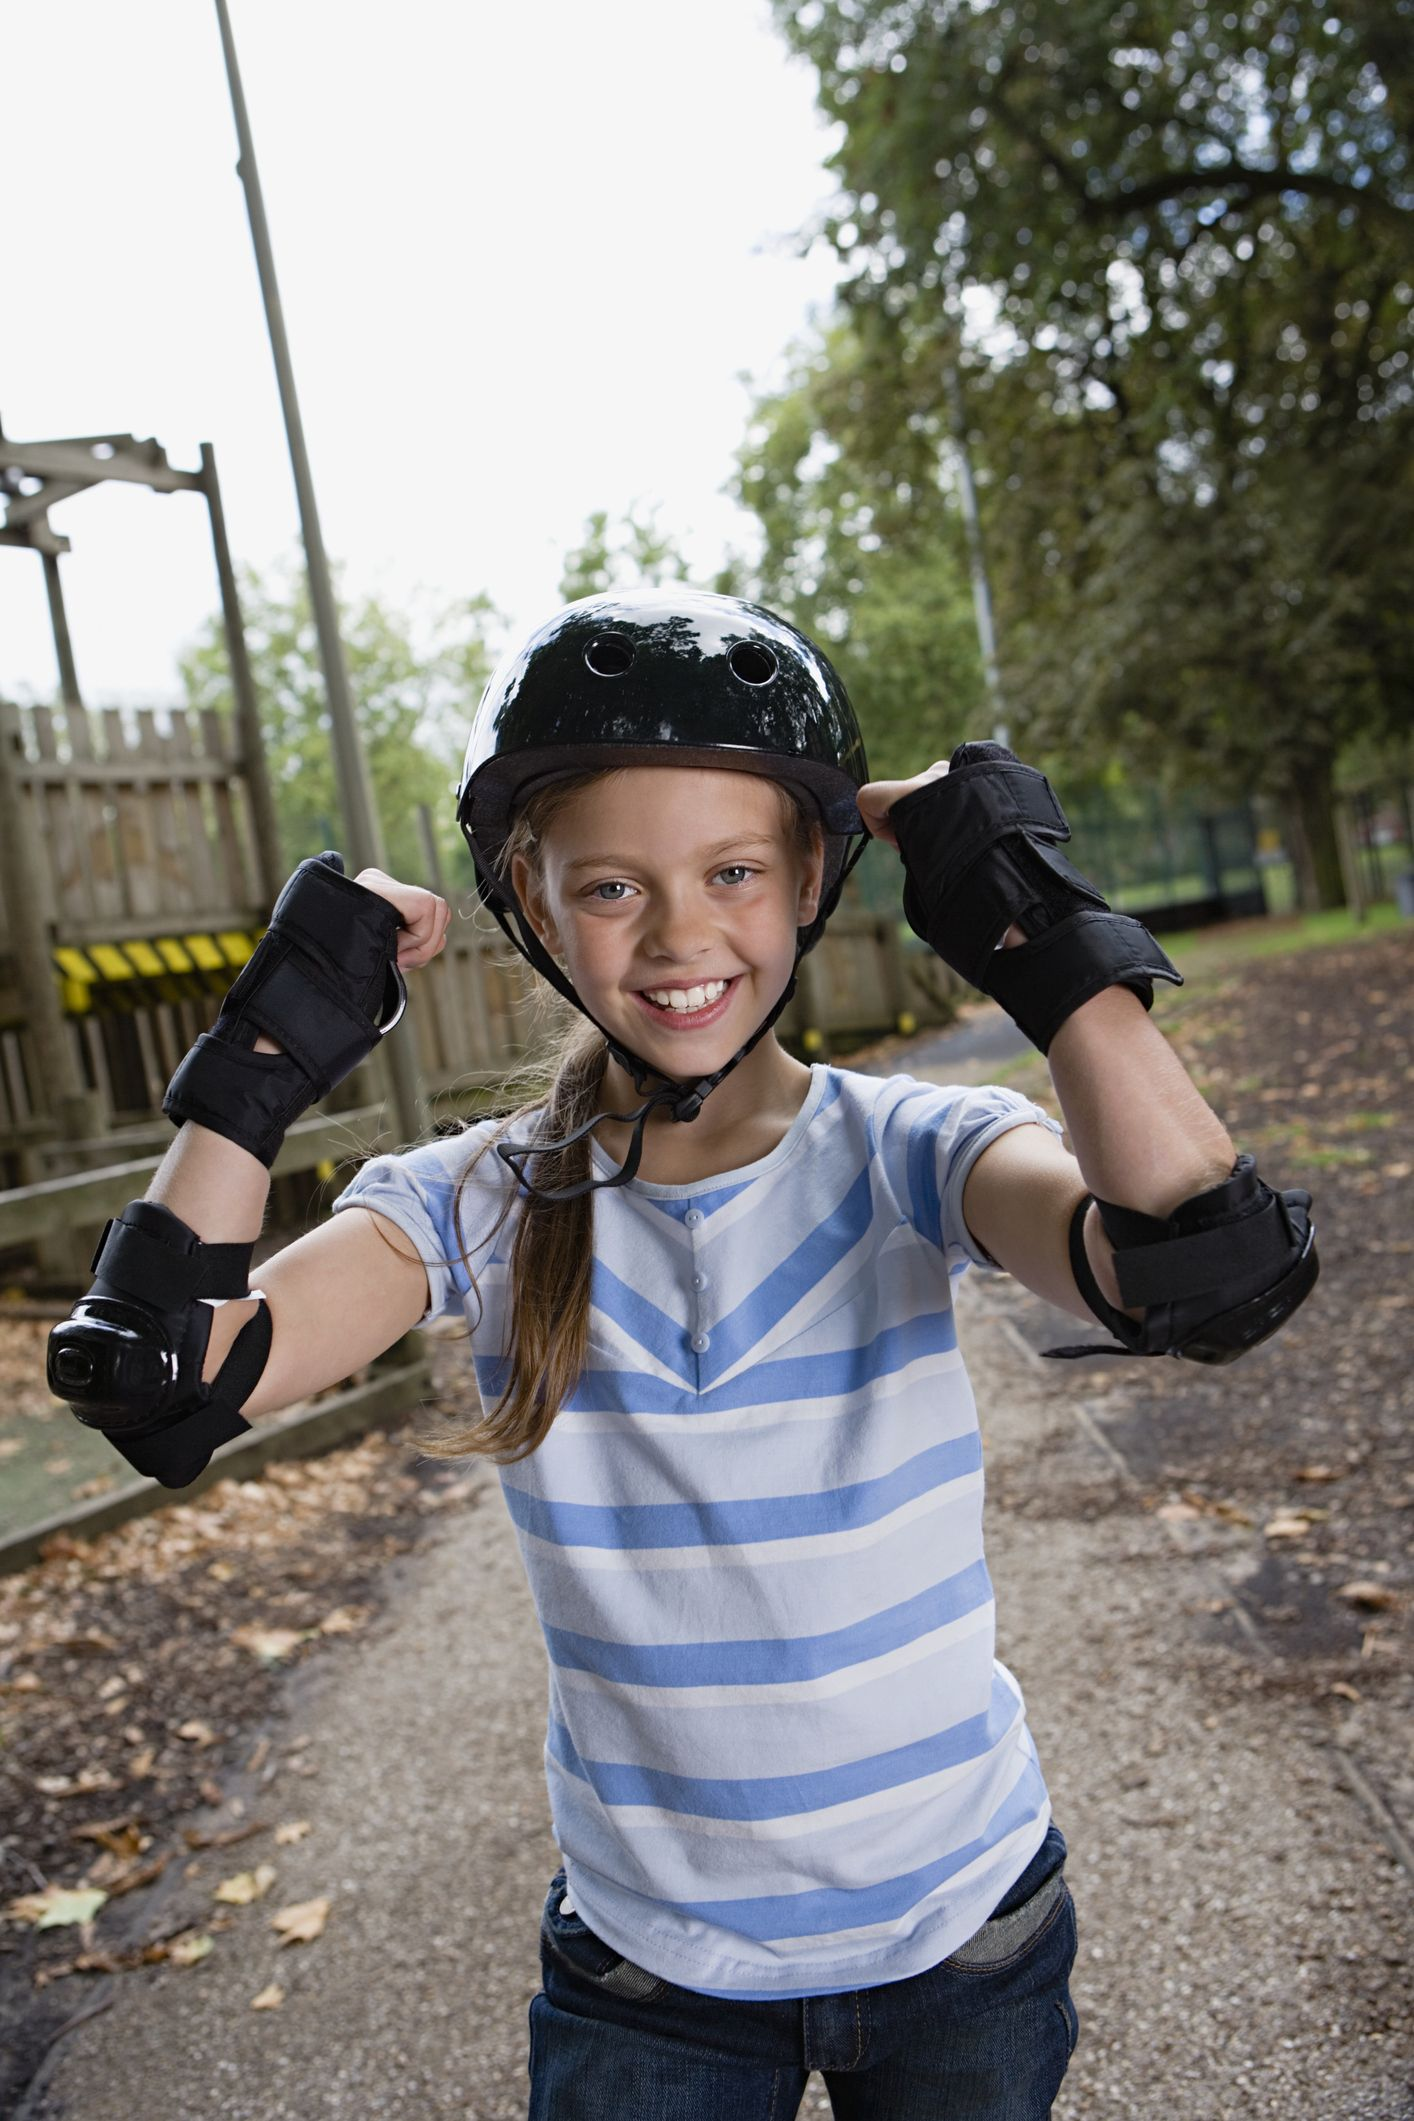 Skateboarder with protective gear